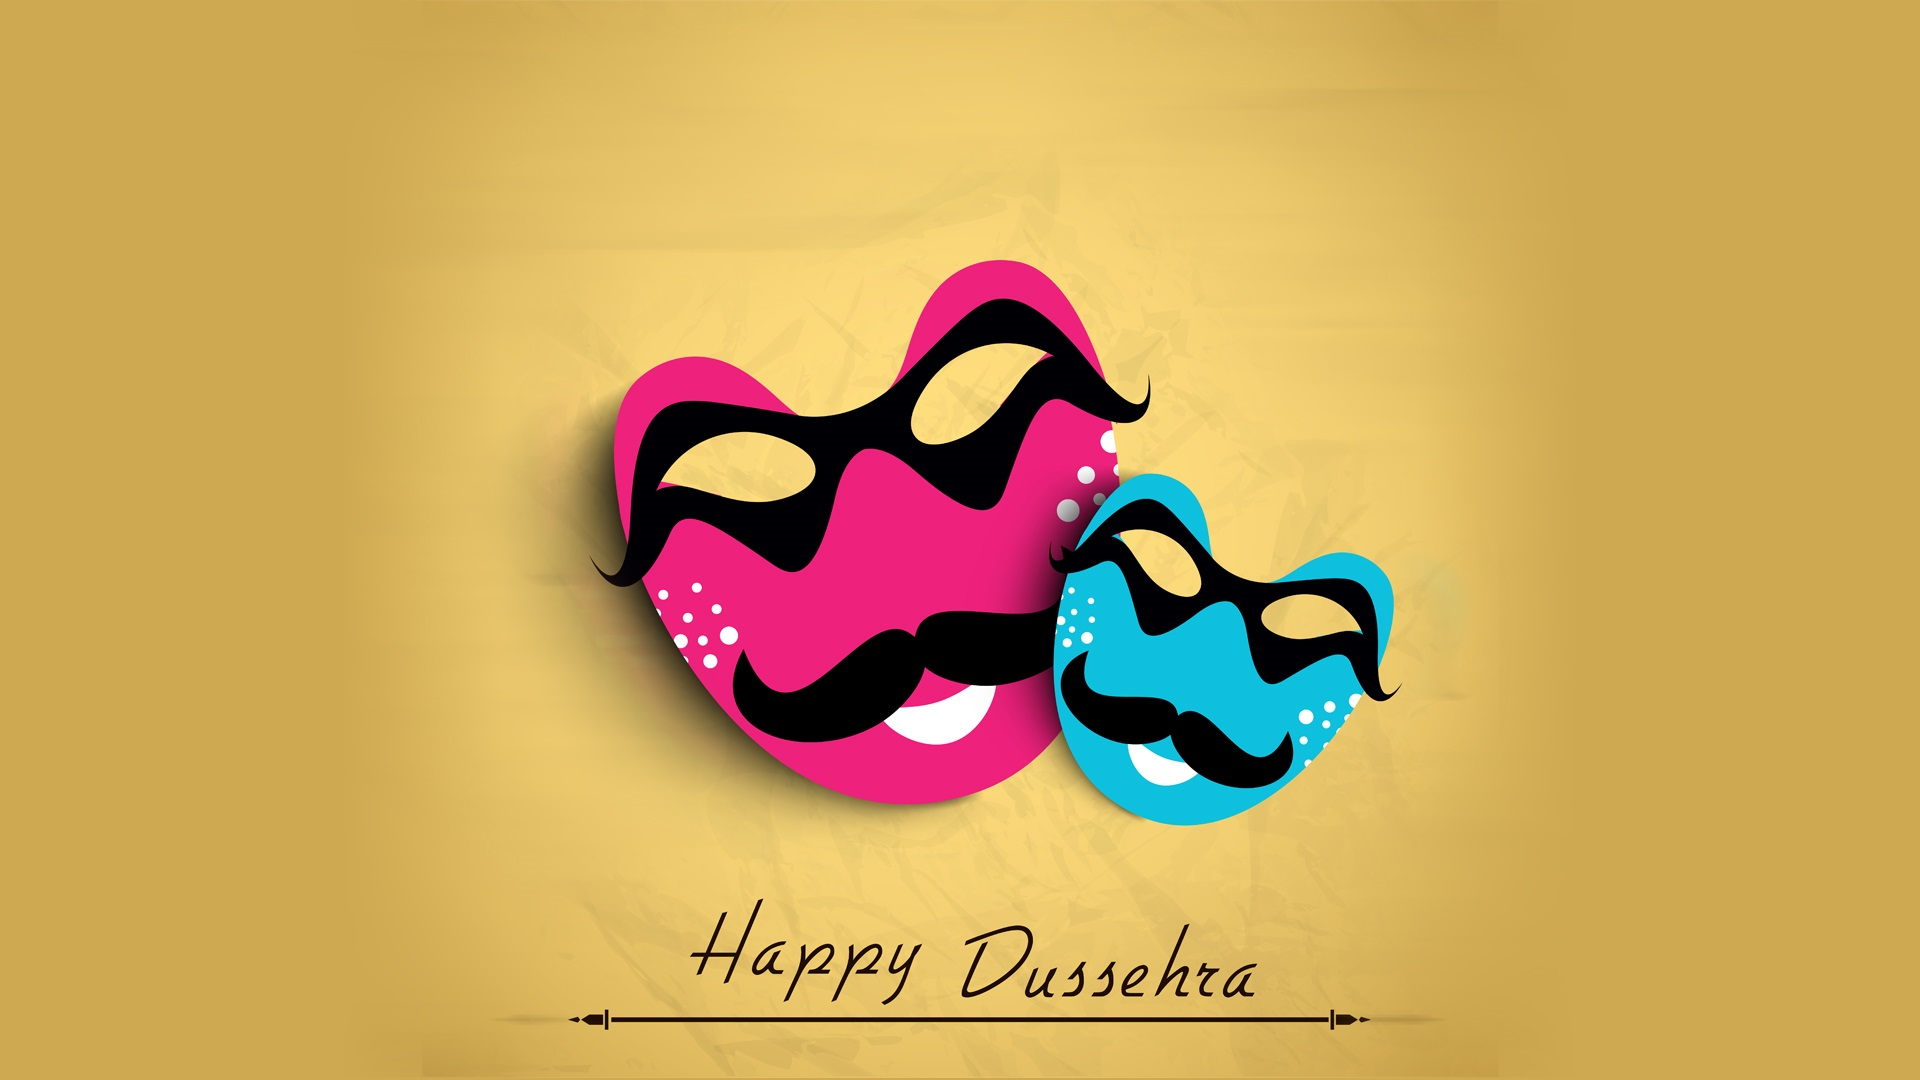 Happy Dussehra 2016 Year New Wishes HD Wallpapers Latest 1920x1080